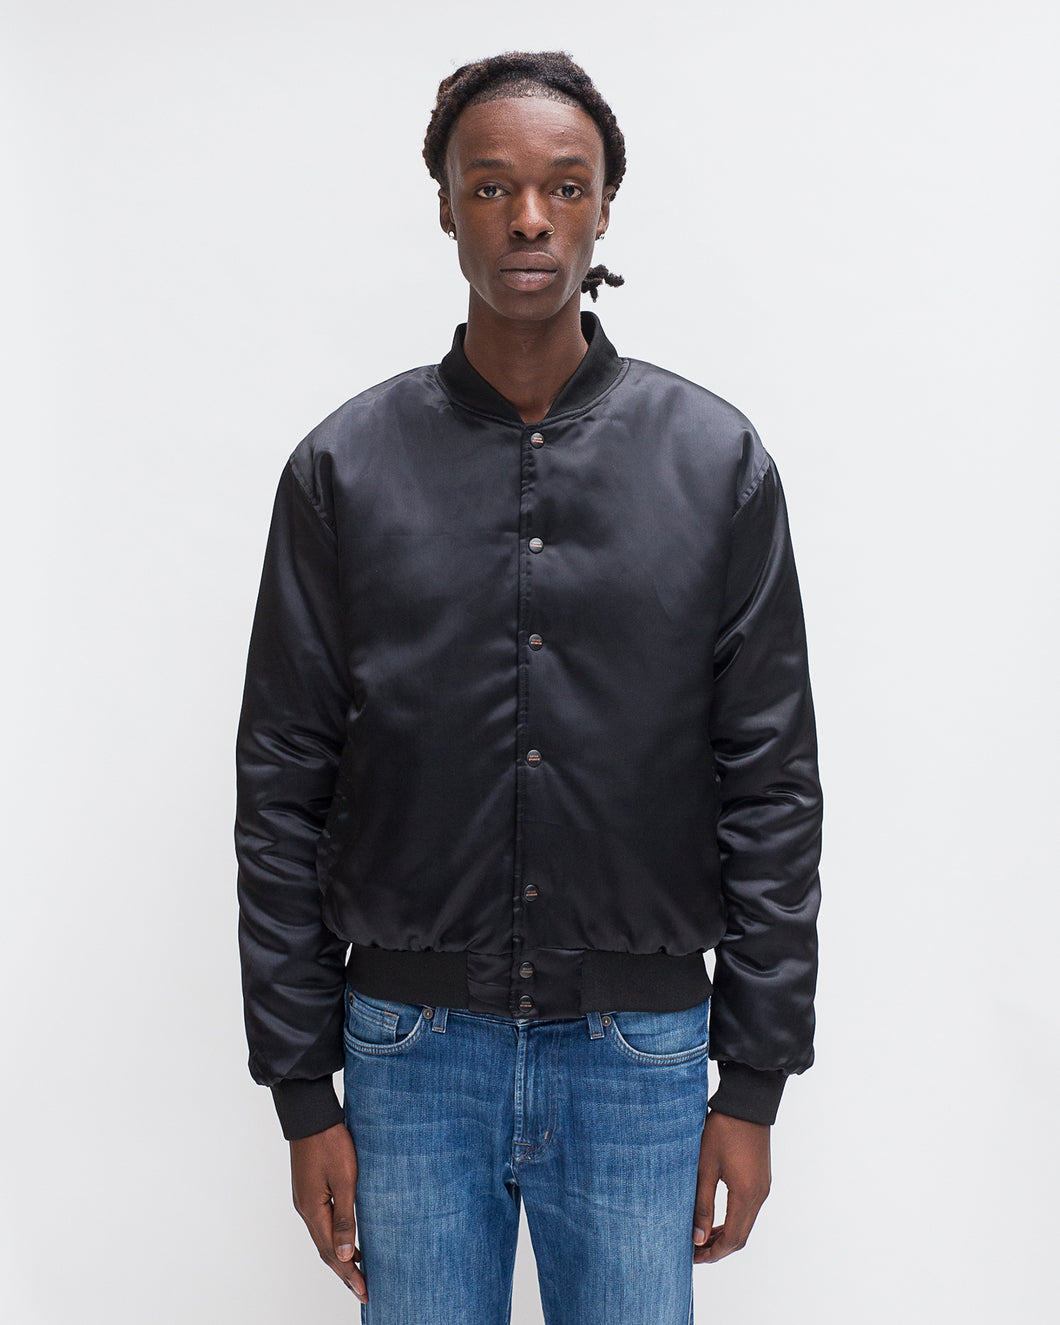 SATIN JACKET BLACK